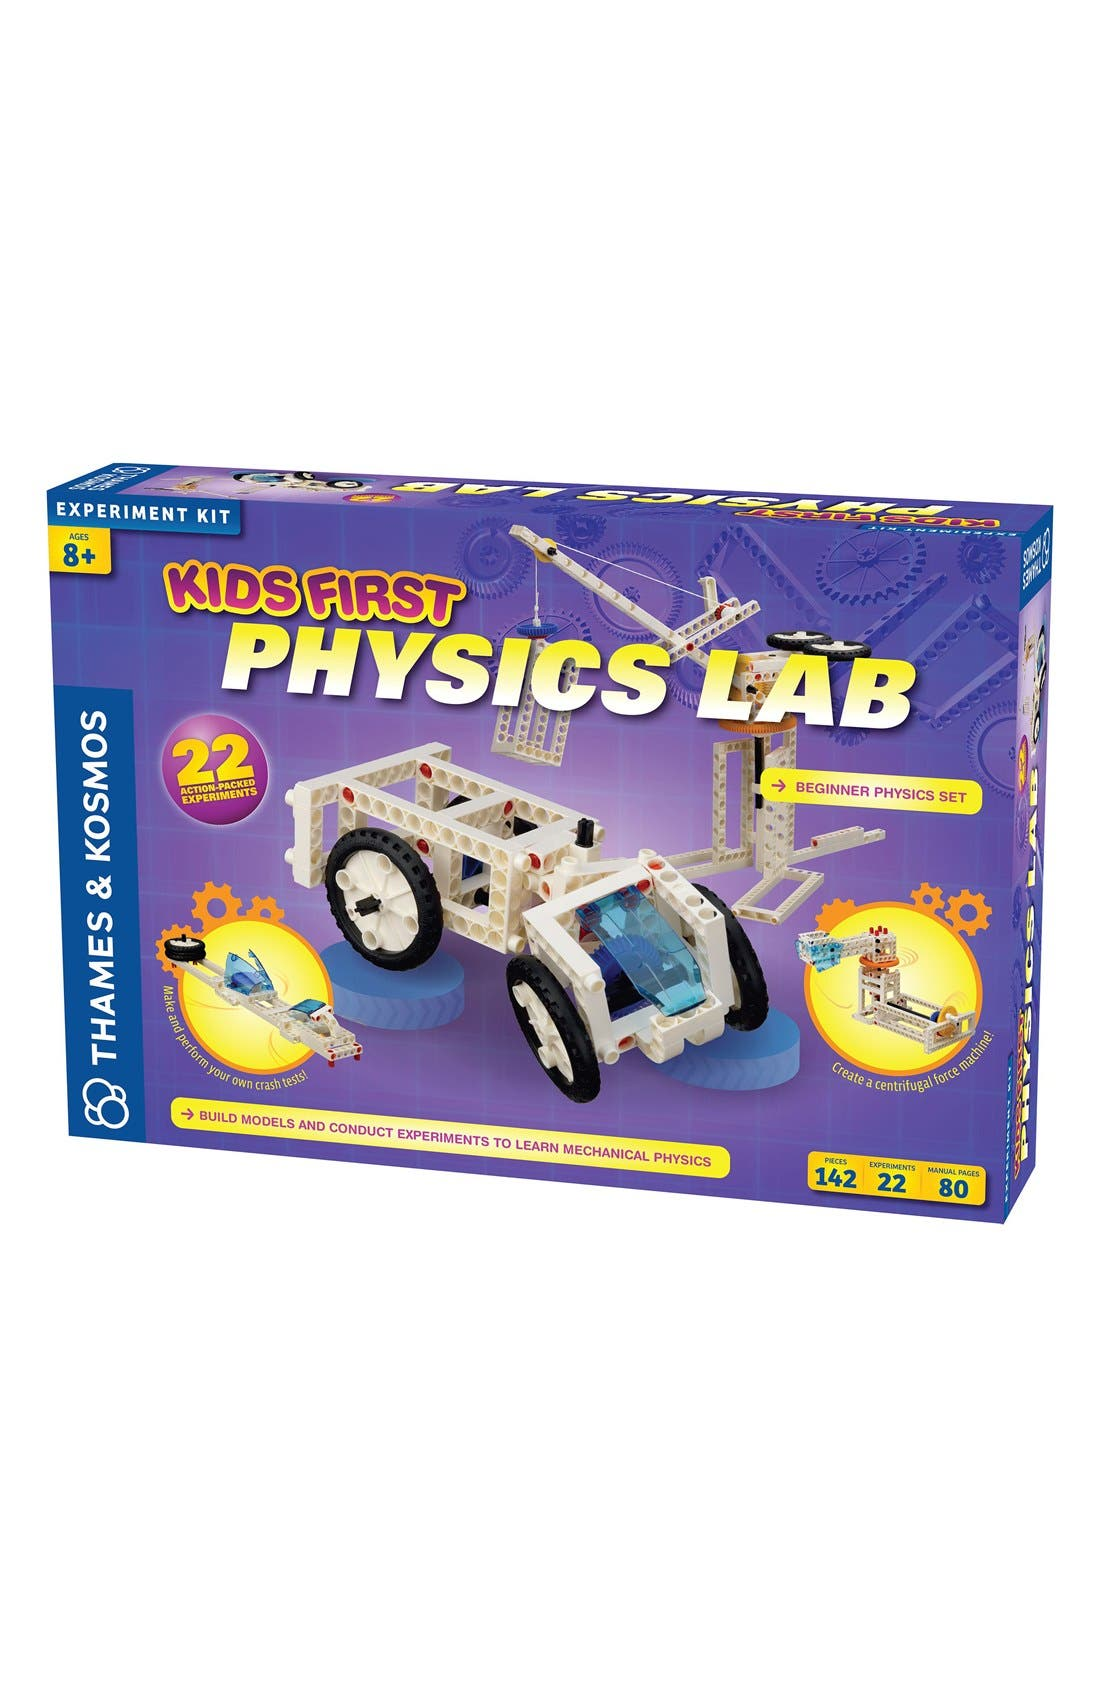 'Kids First - Physics Lab' Experiment Kit,                         Main,                         color, PURPLE